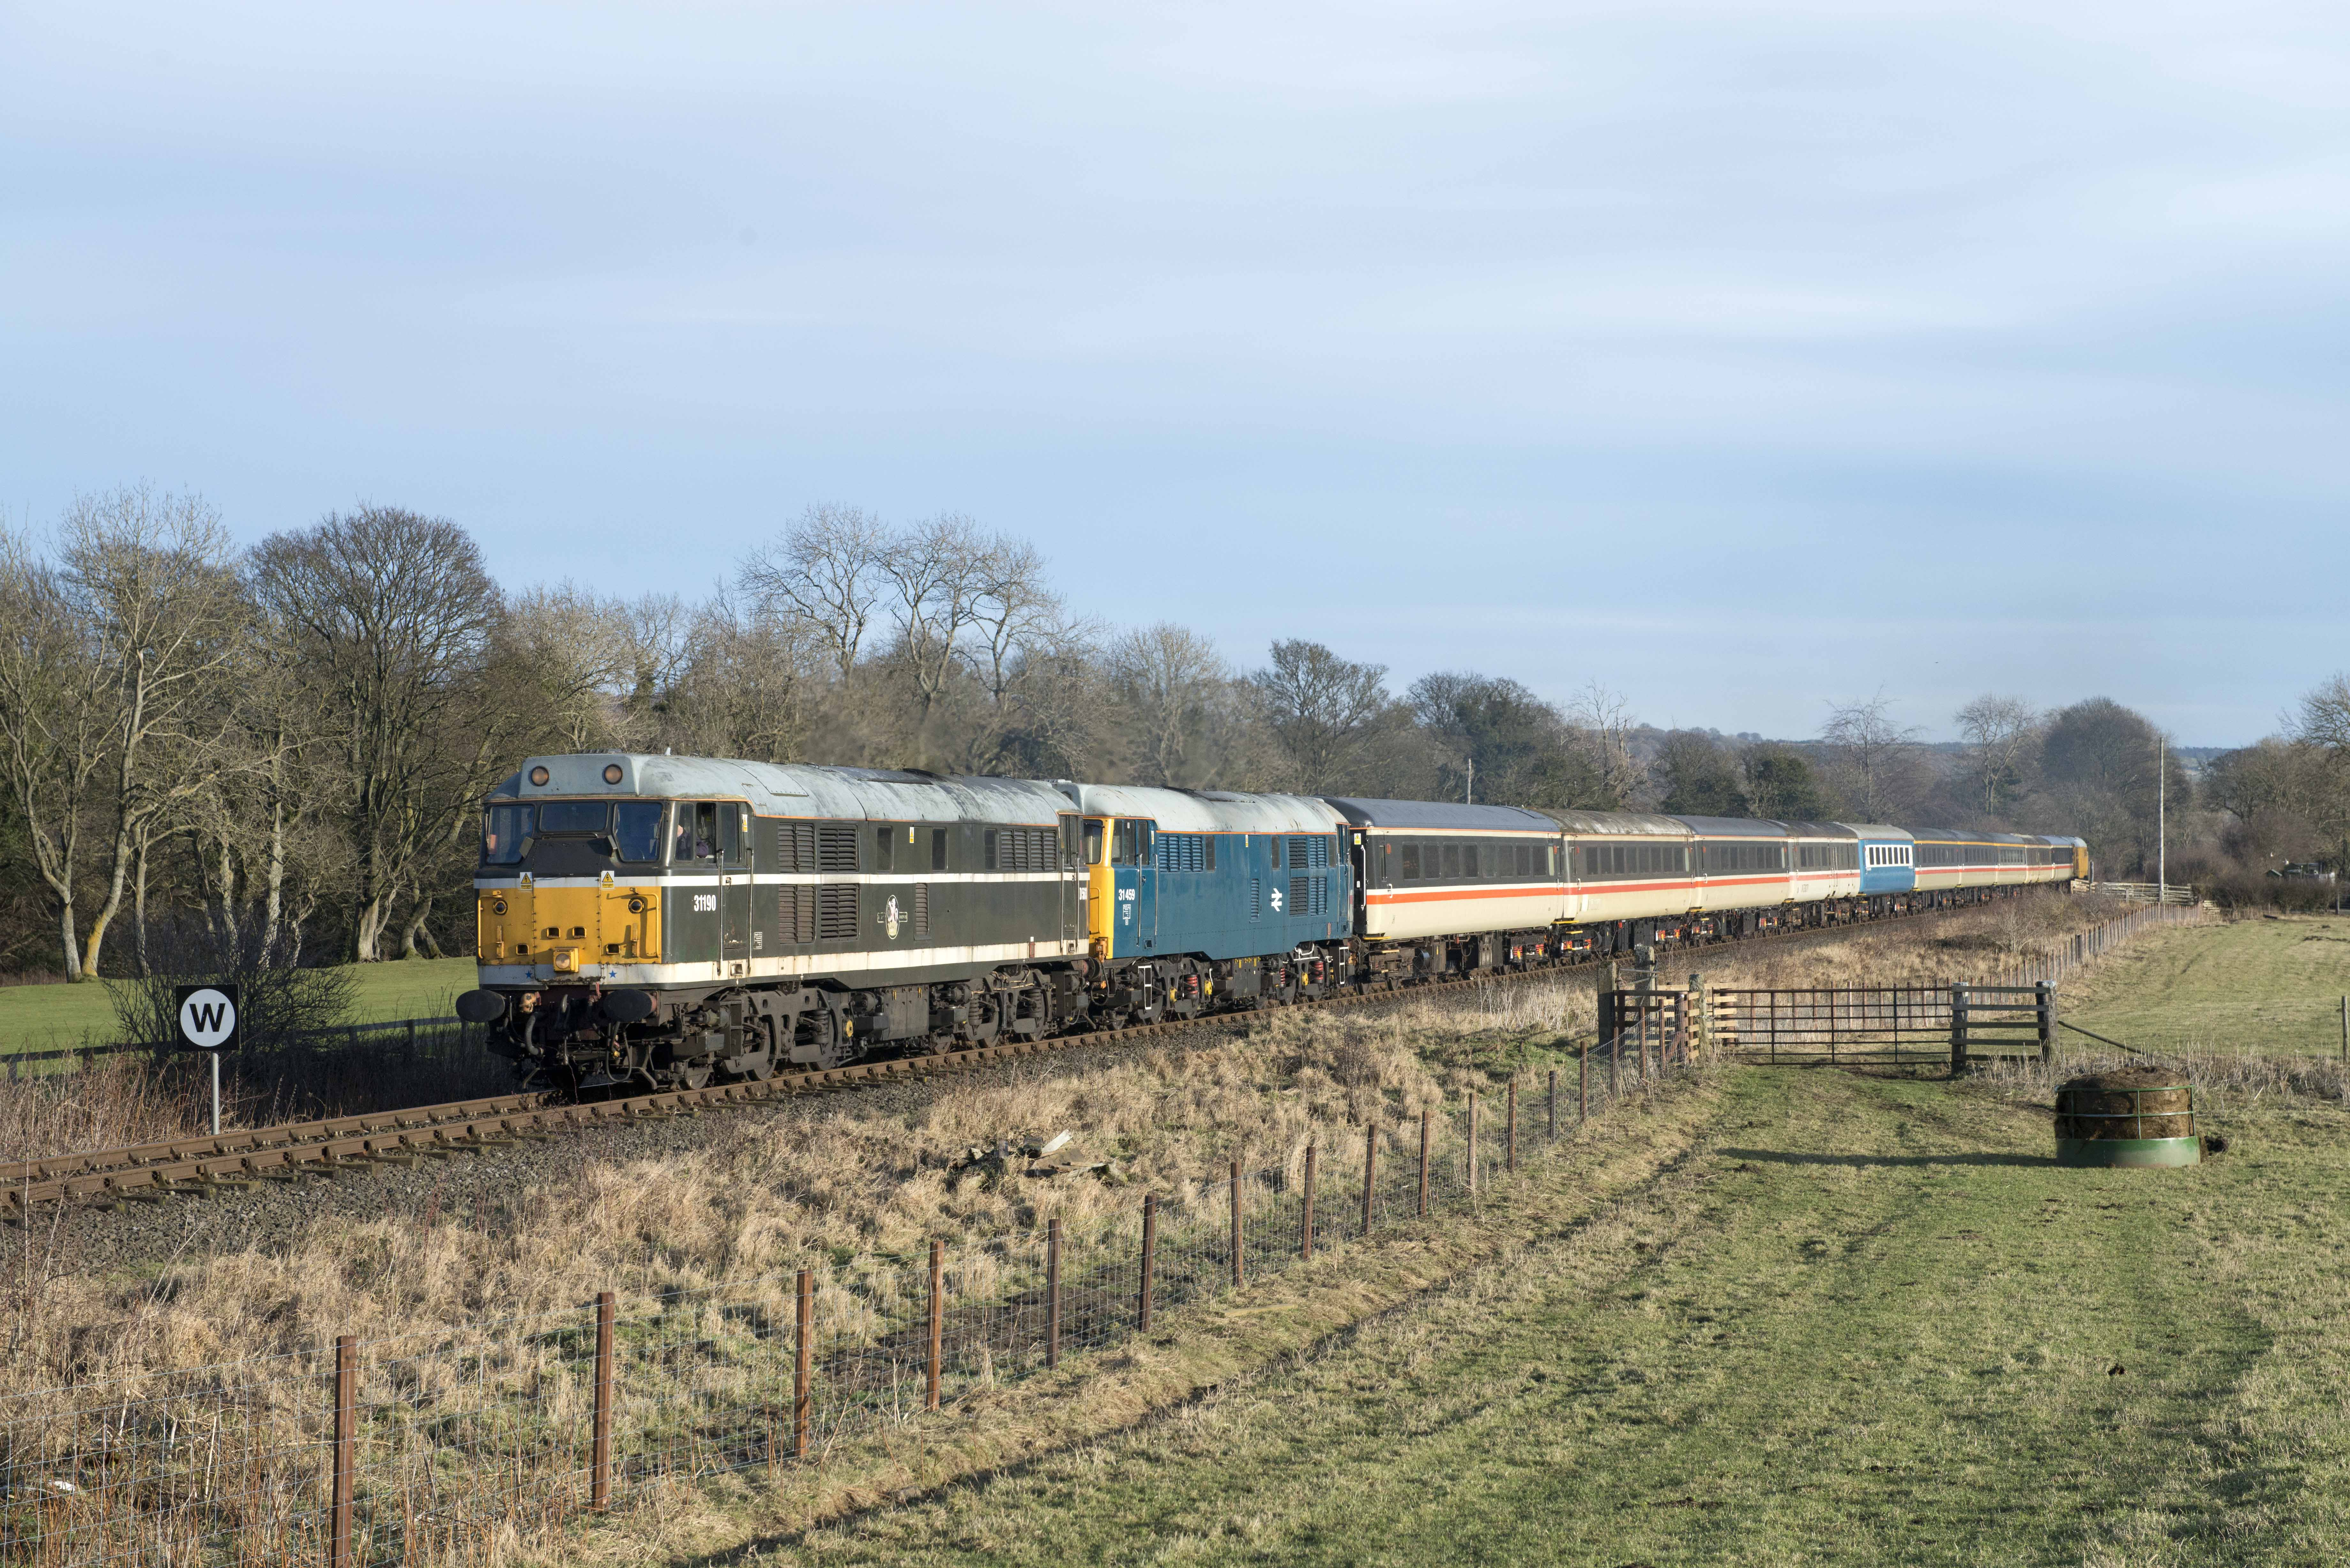 2017-12-09 John Lewins 5290. 31190-459 (with 31465 on rear) pass  Holebeck 4. Christmas Town - Stanh